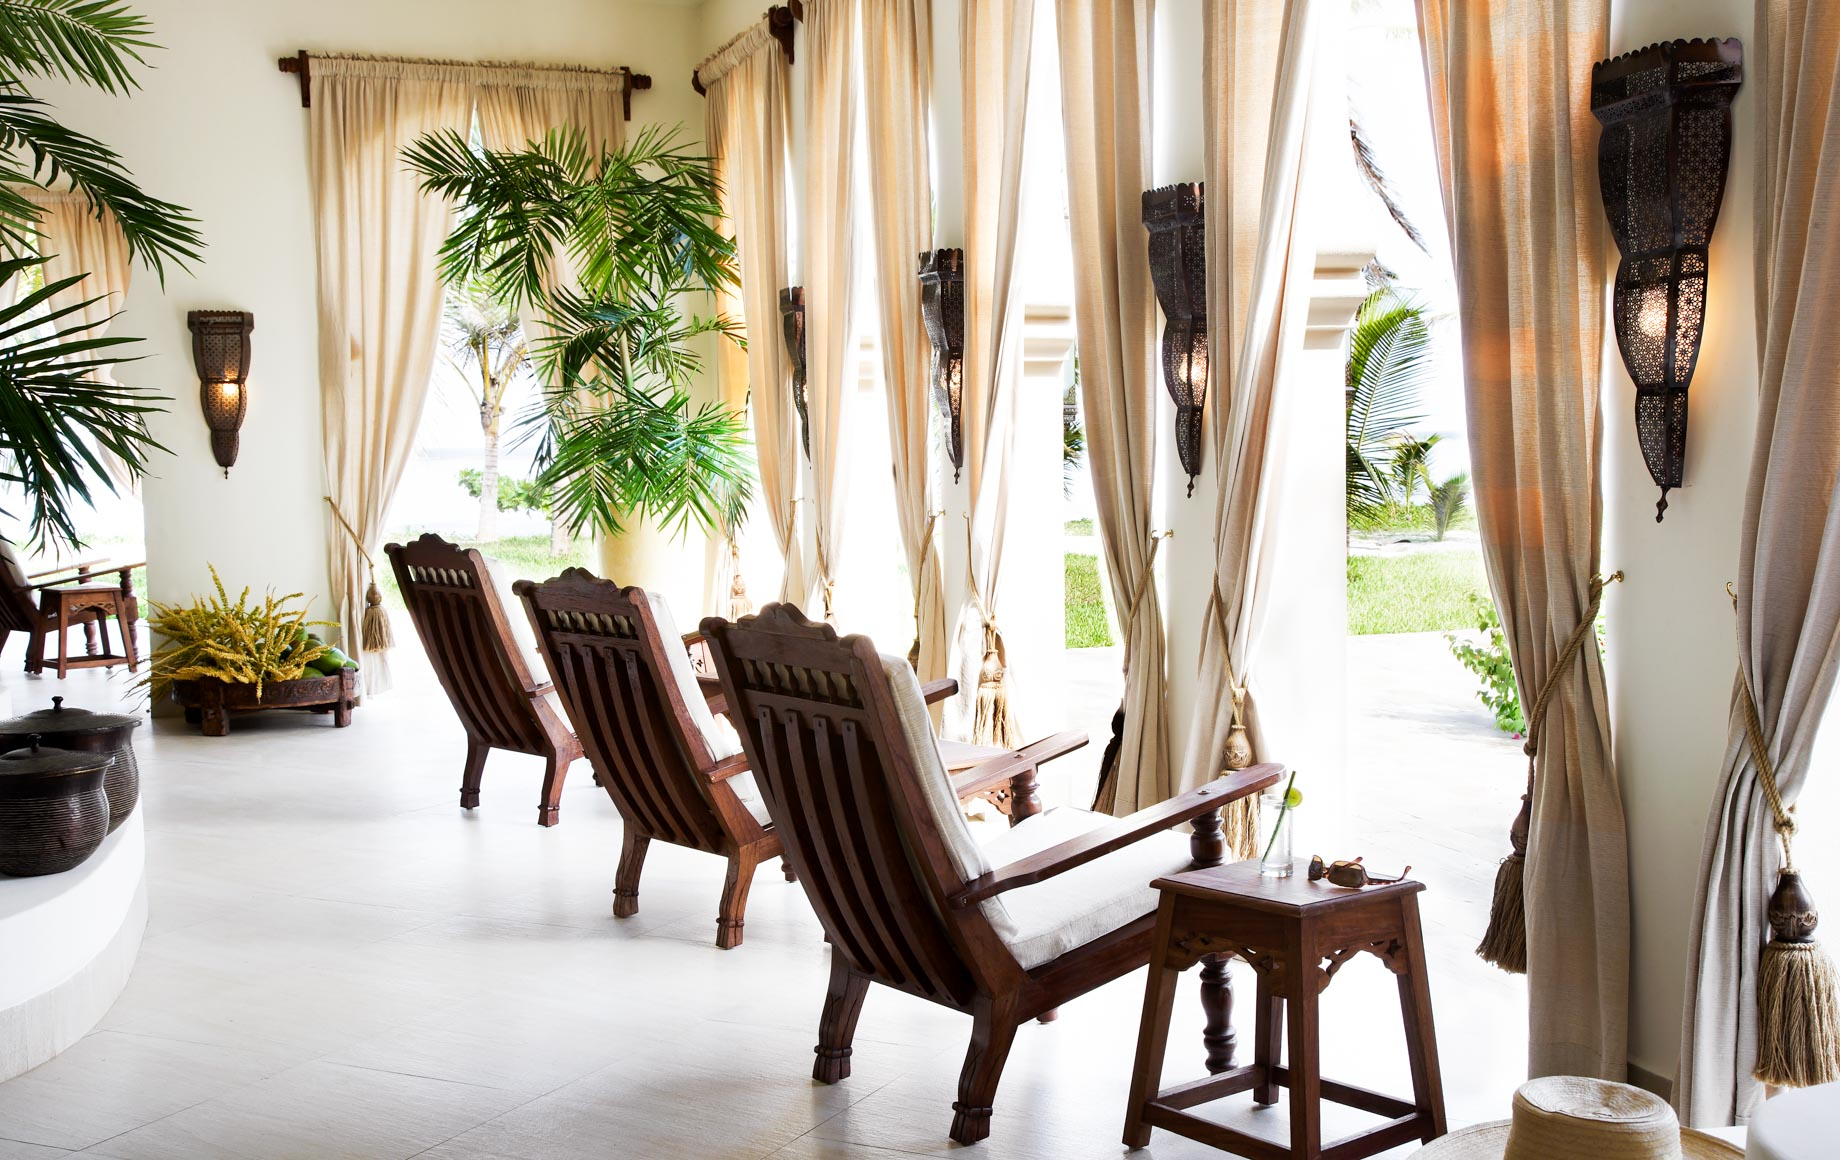 Lounge chairs on deck at Baraza Resort & Spa